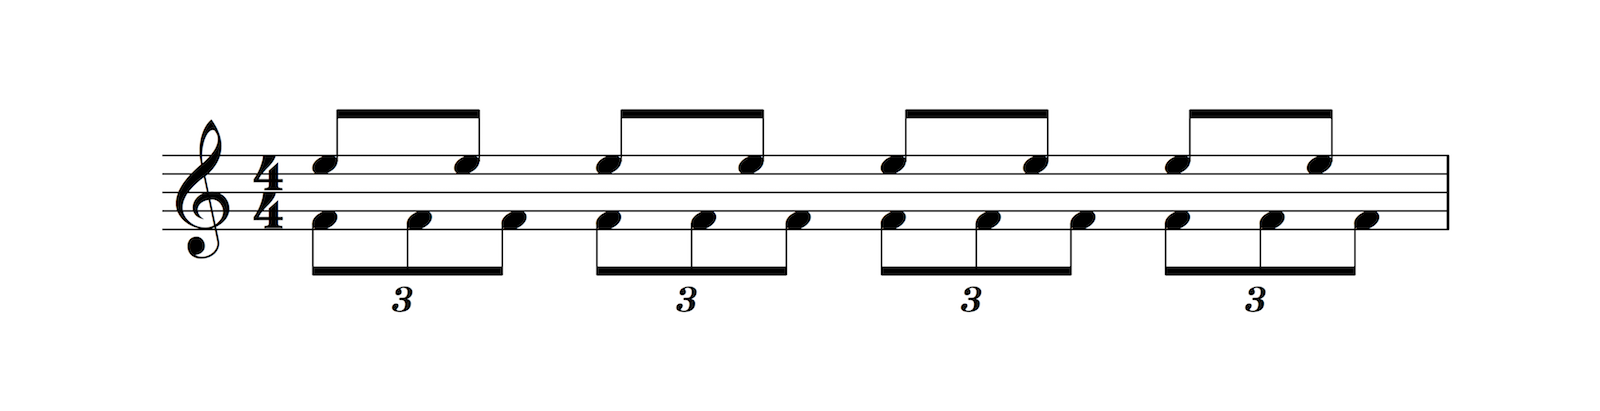 Part 3: Time Signatures Explained, Writing Songs in 12/8